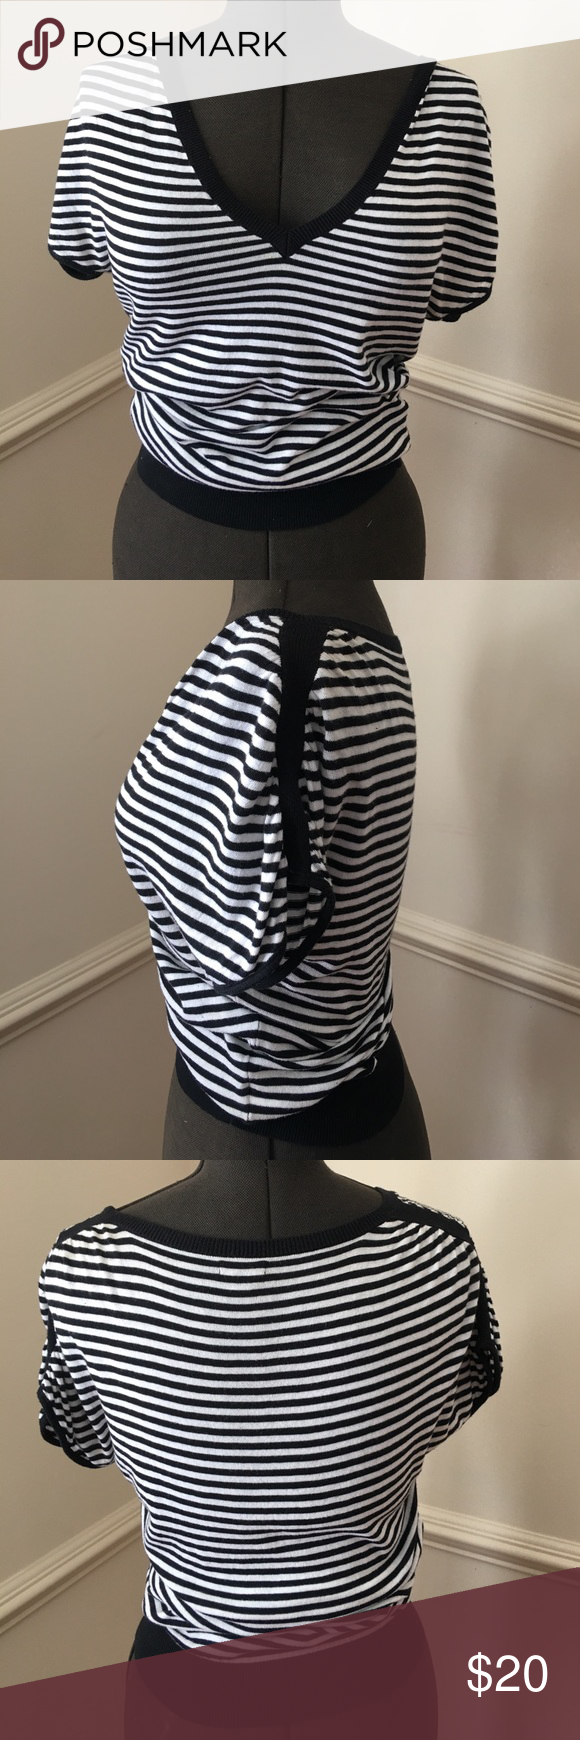 EXPRESS V NECK BLACK & WHITE STRIPE COTTON TOP EXPRESS V NECK BLACK & WHITE COTTON TOP WITH BLACK STROPE ON SHOULDERS Express Tops Blouses